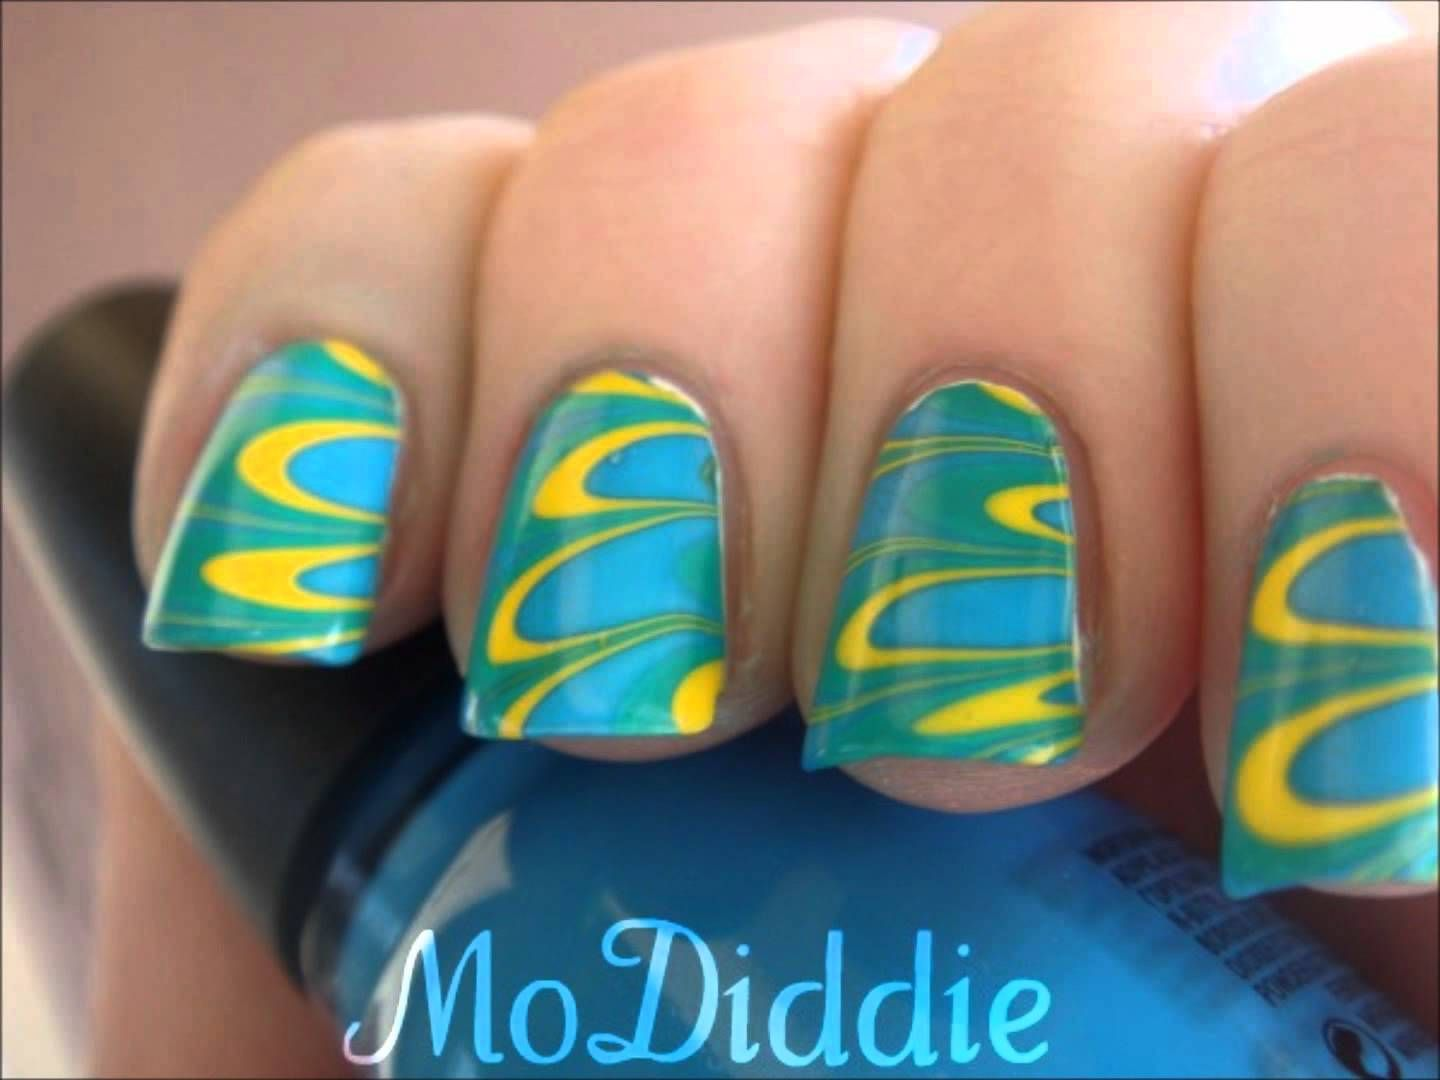 BRIGHT WATER MARBLE NAIL ART TUTORIAL IN HD | Such a tutorial nerd ...